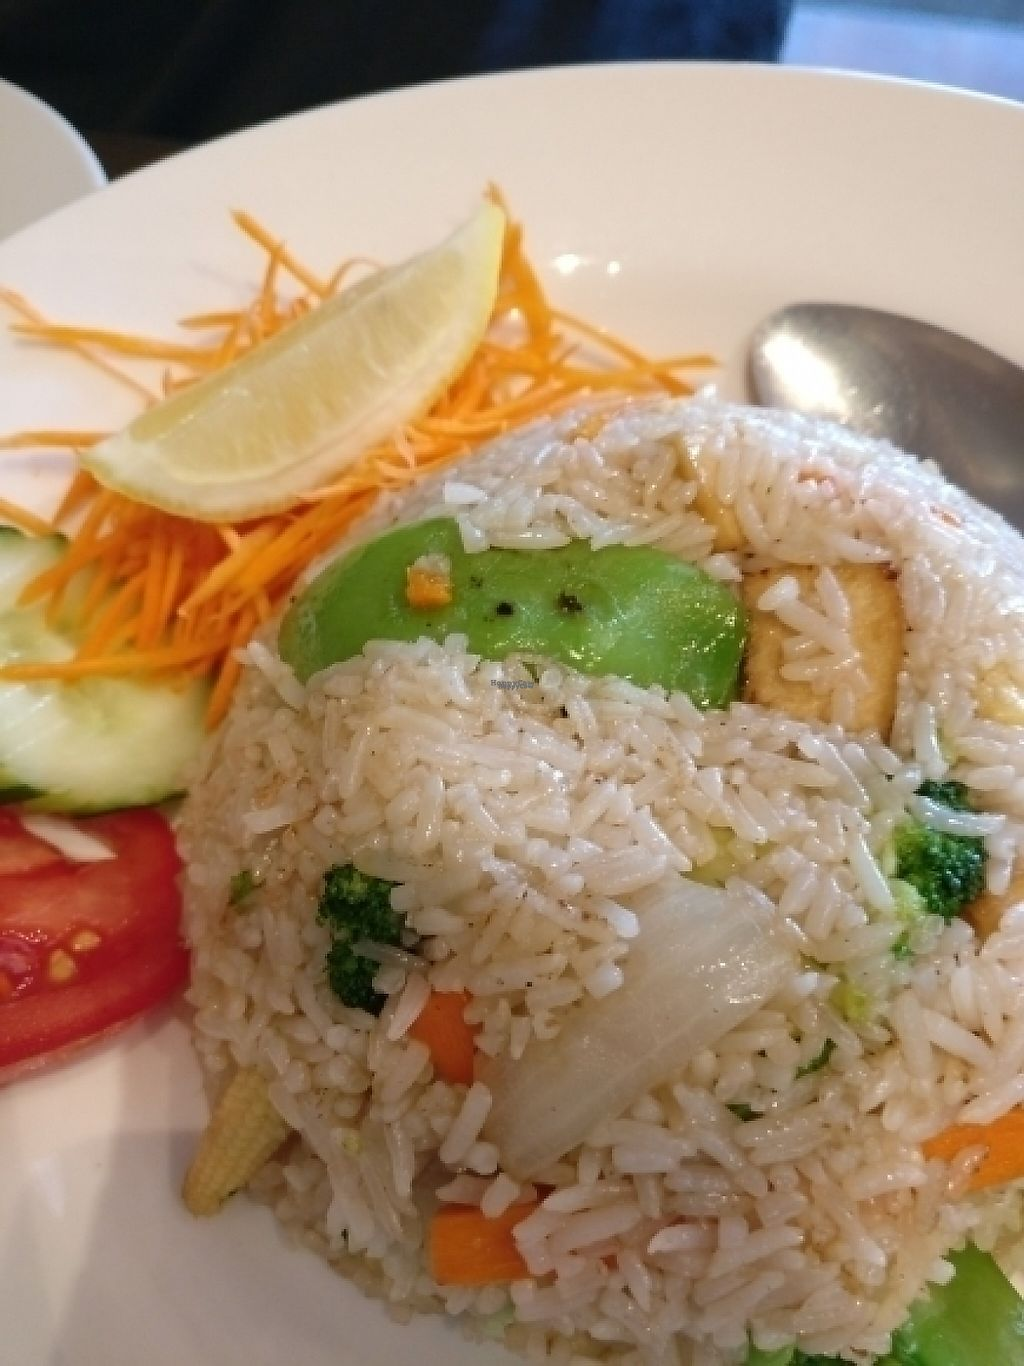 "Photo of Red Spoon  by <a href=""/members/profile/Aloo"">Aloo</a> <br/>Thai fried rice  <br/> January 30, 2017  - <a href='/contact/abuse/image/43606/219484'>Report</a>"